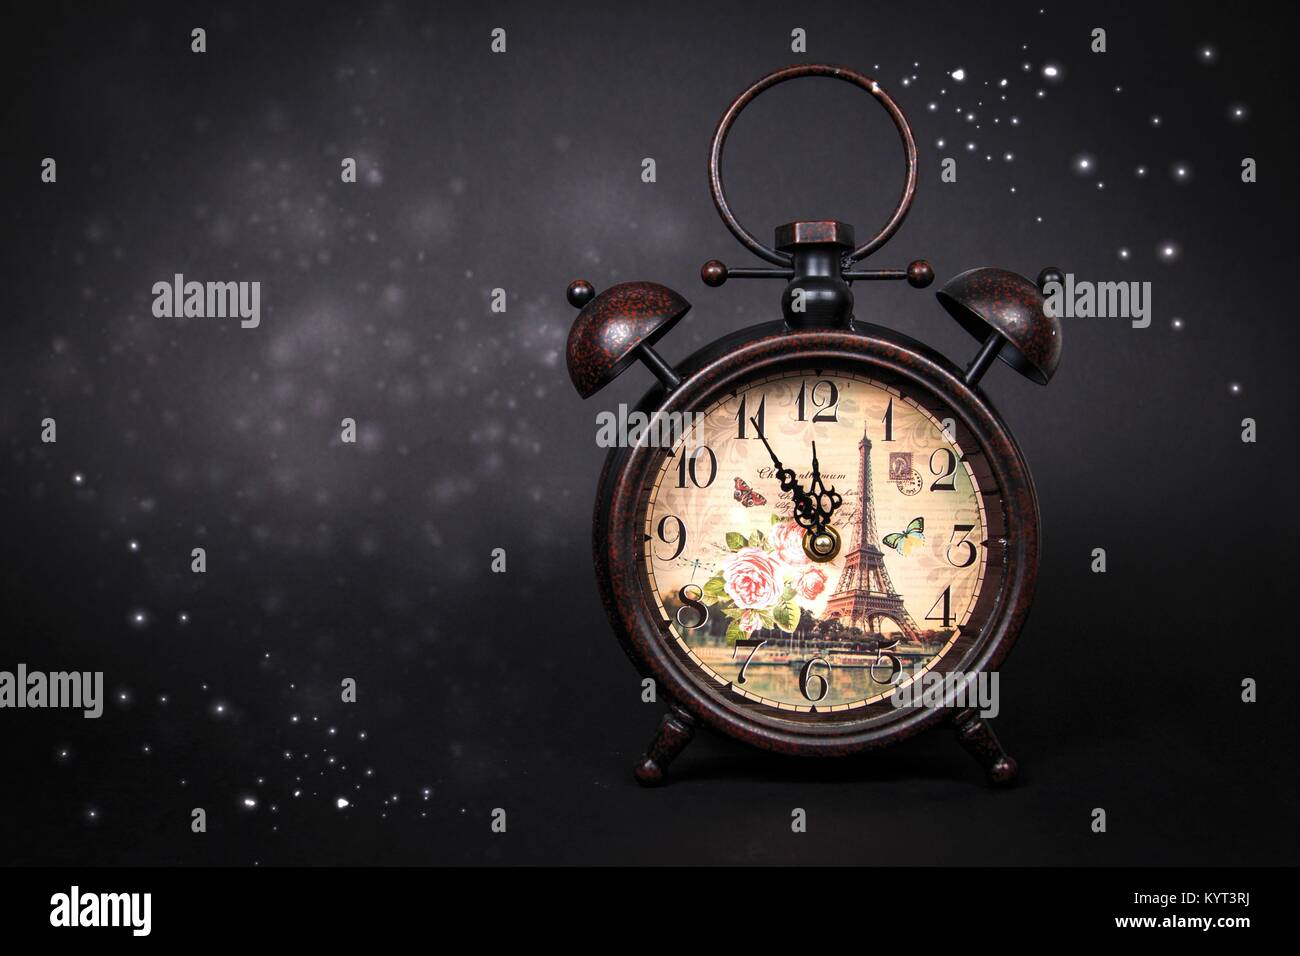 Photo Of An Old Vintage Clock On Black Background With Sparkles And Stars